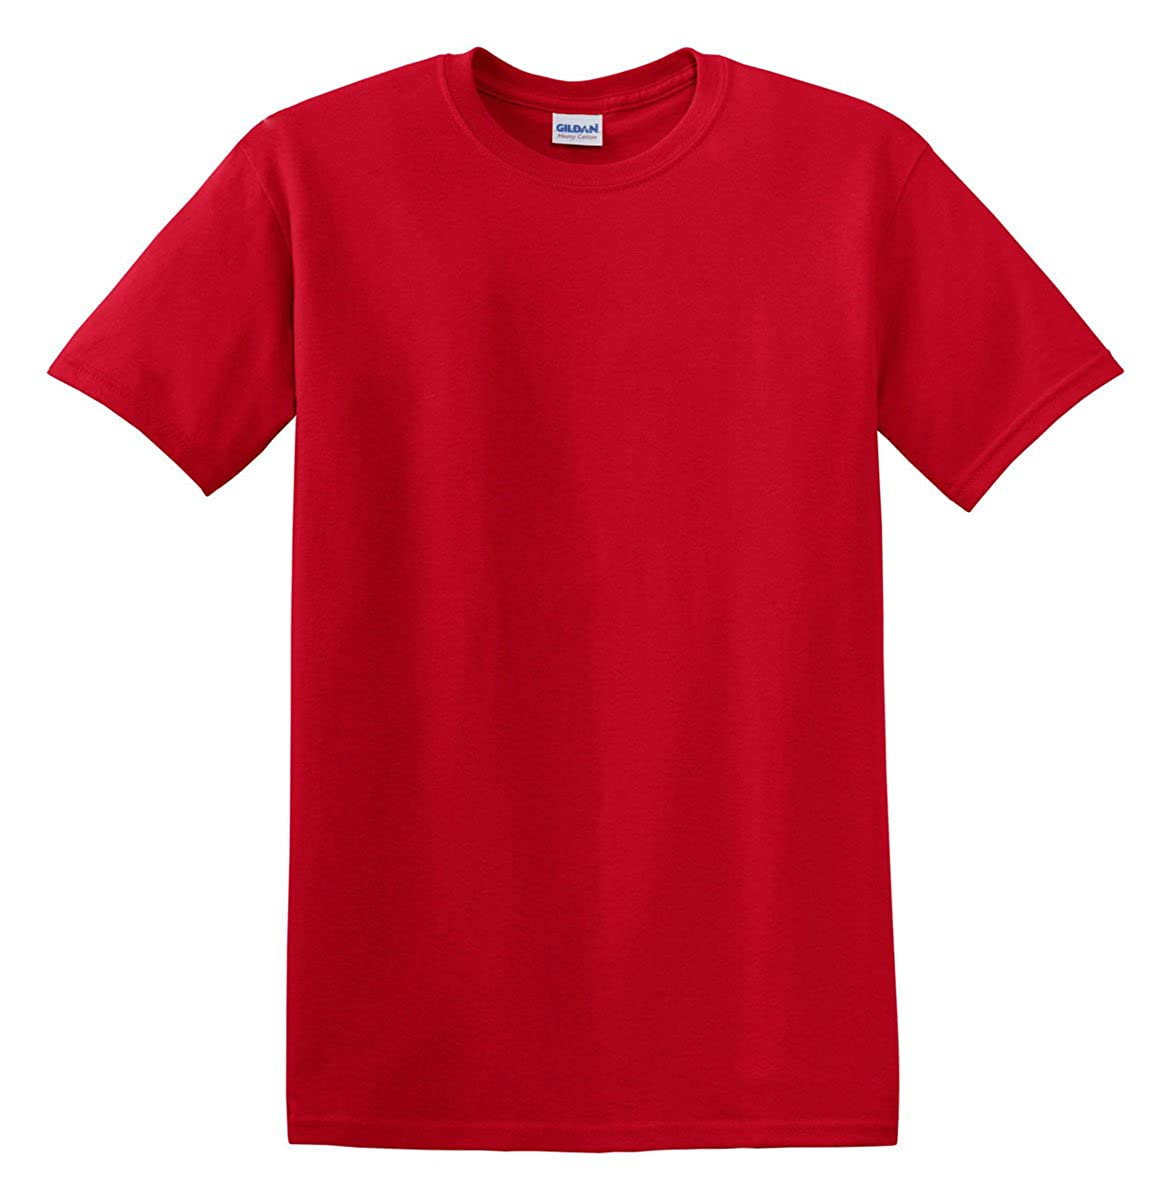 f08f499f9b Gildan Heavy Cotton 5.3 Oz. T-Shirt (G500)- Cardinal Red,Large